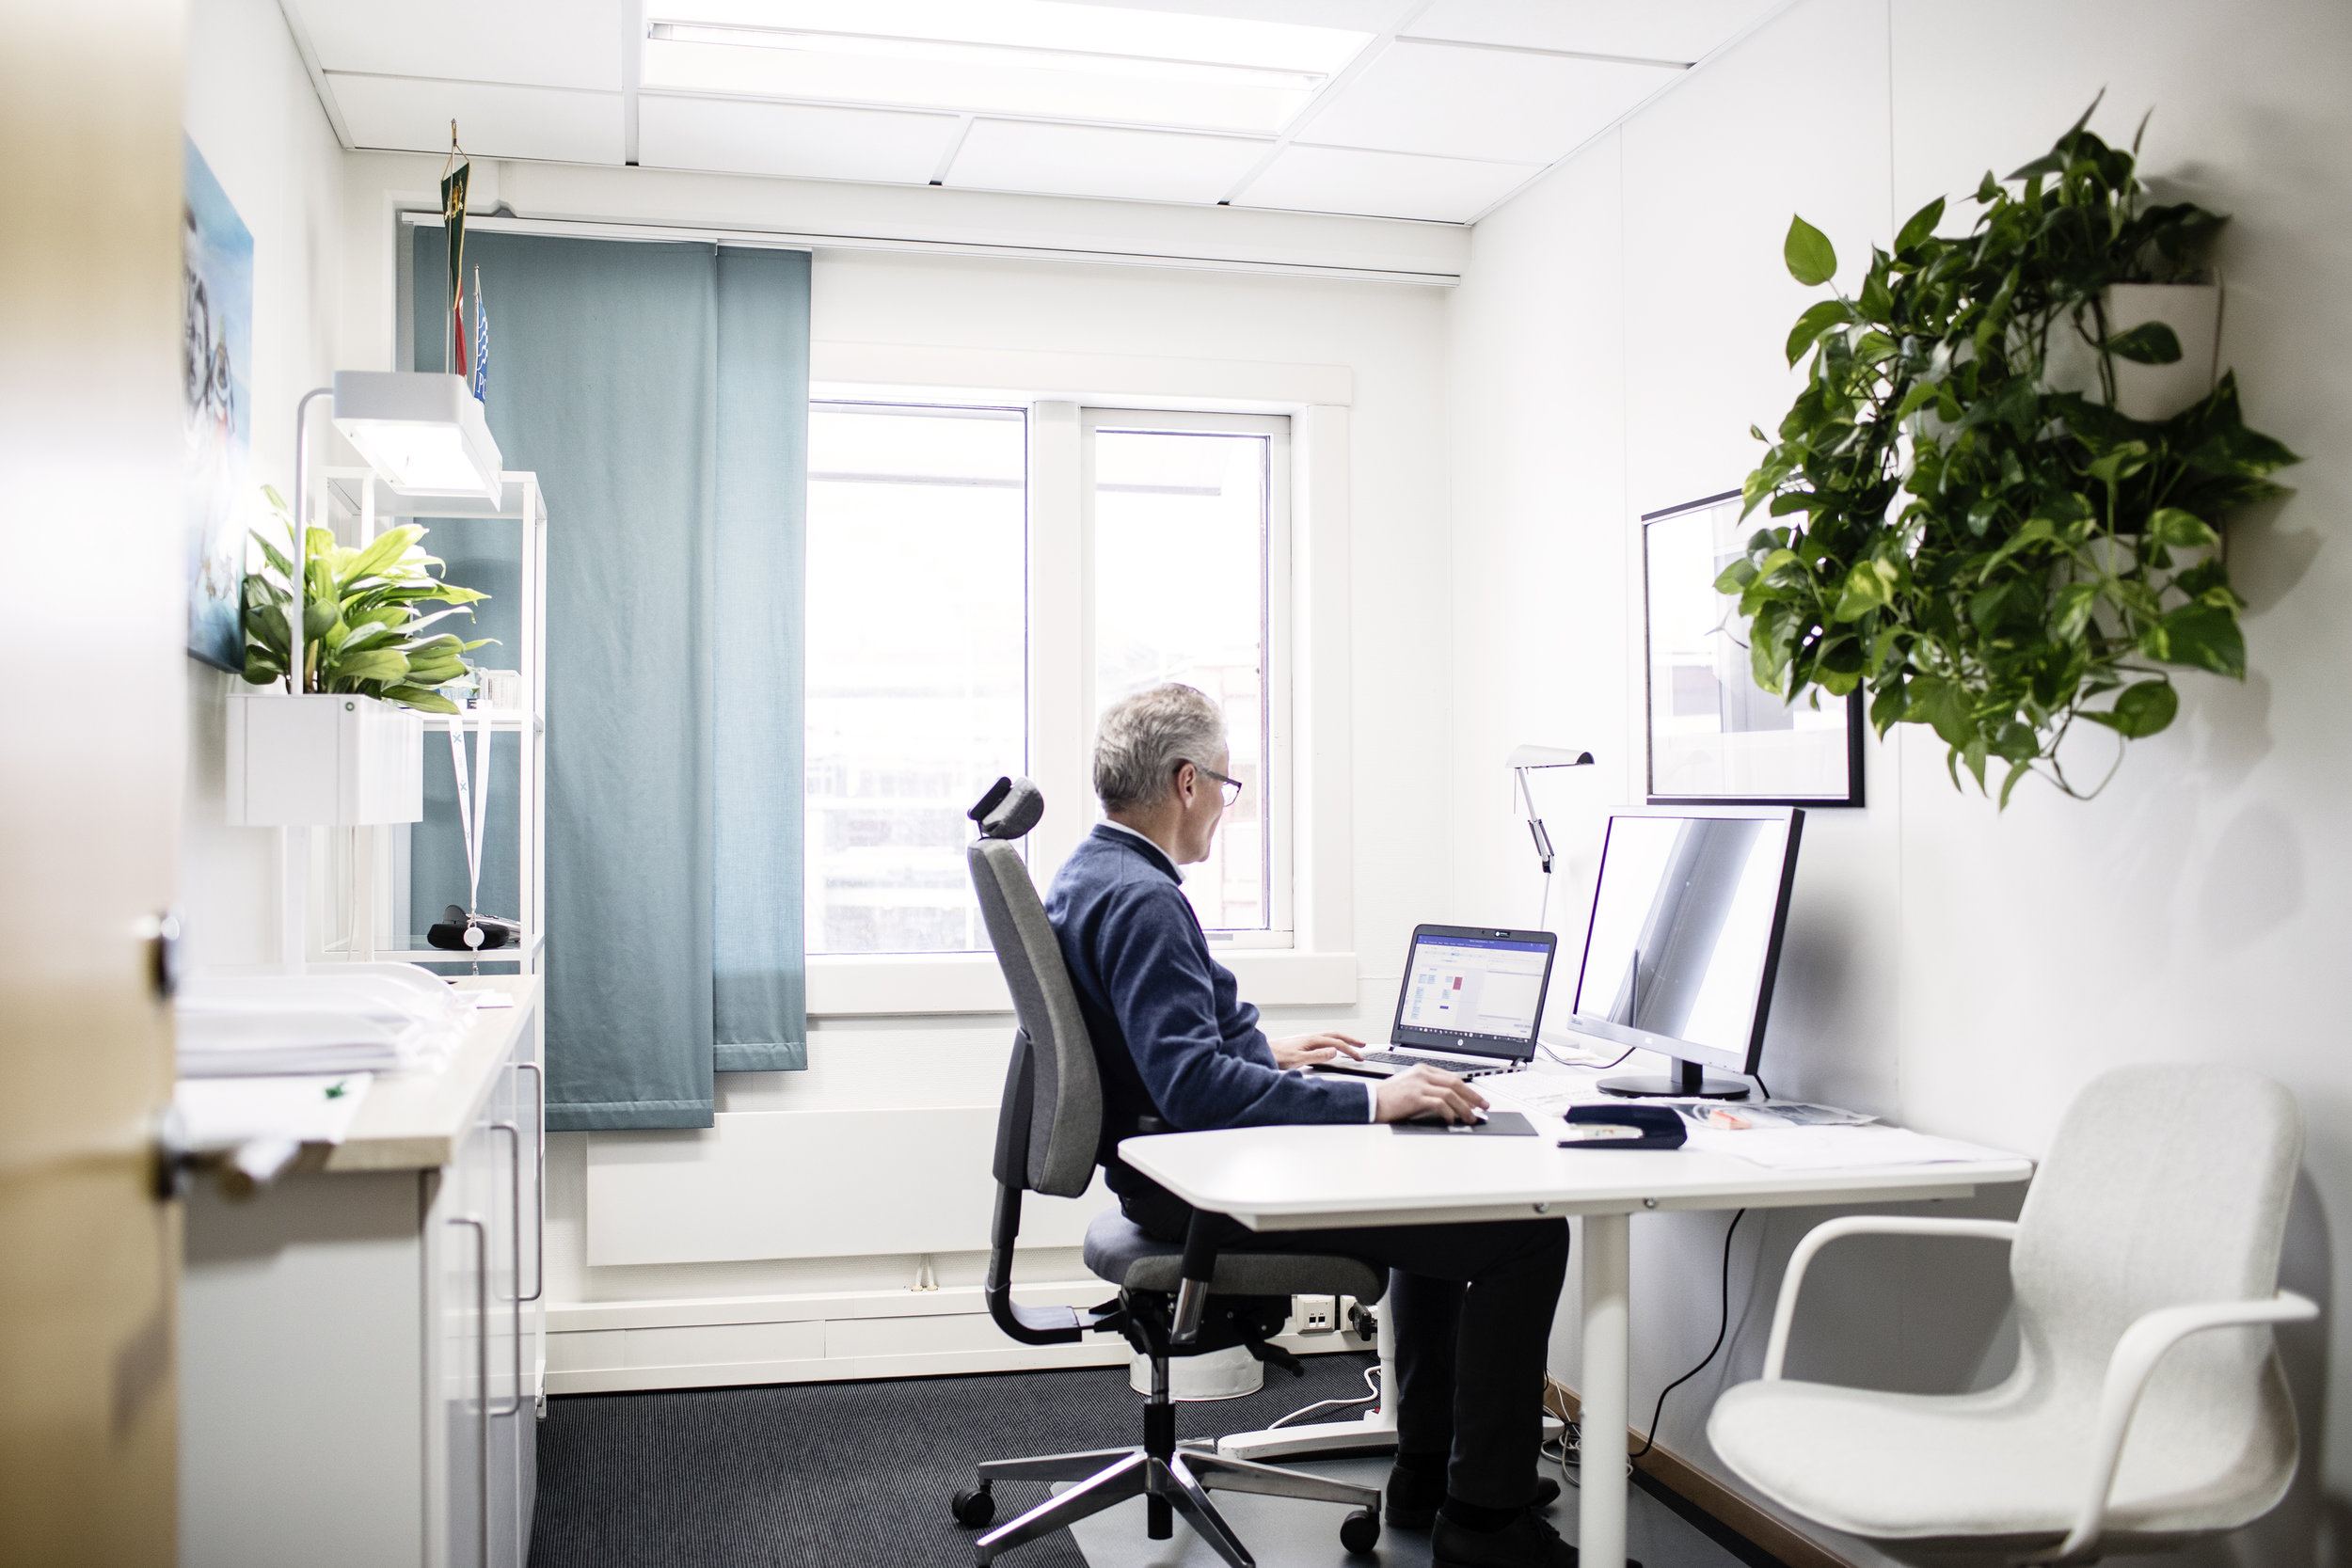 OFFICE SPACE - Equipped to your preferences or with your own furnitureACCESS 24/7